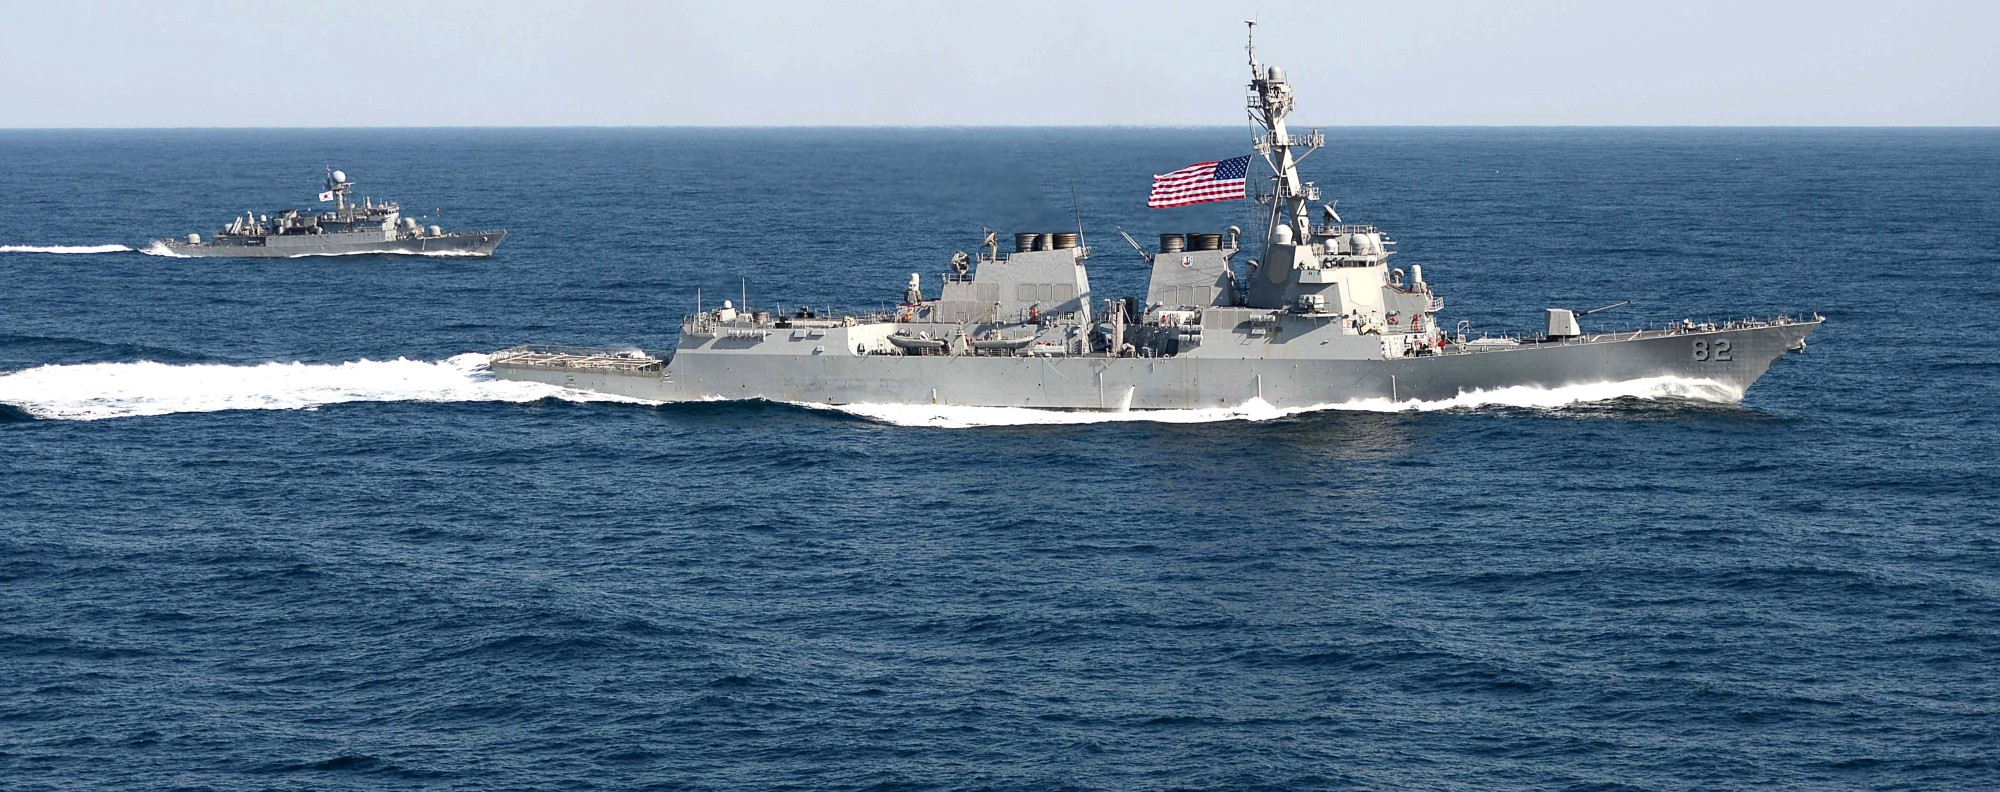 US navy ships in the South China Sea. Photo: AFP